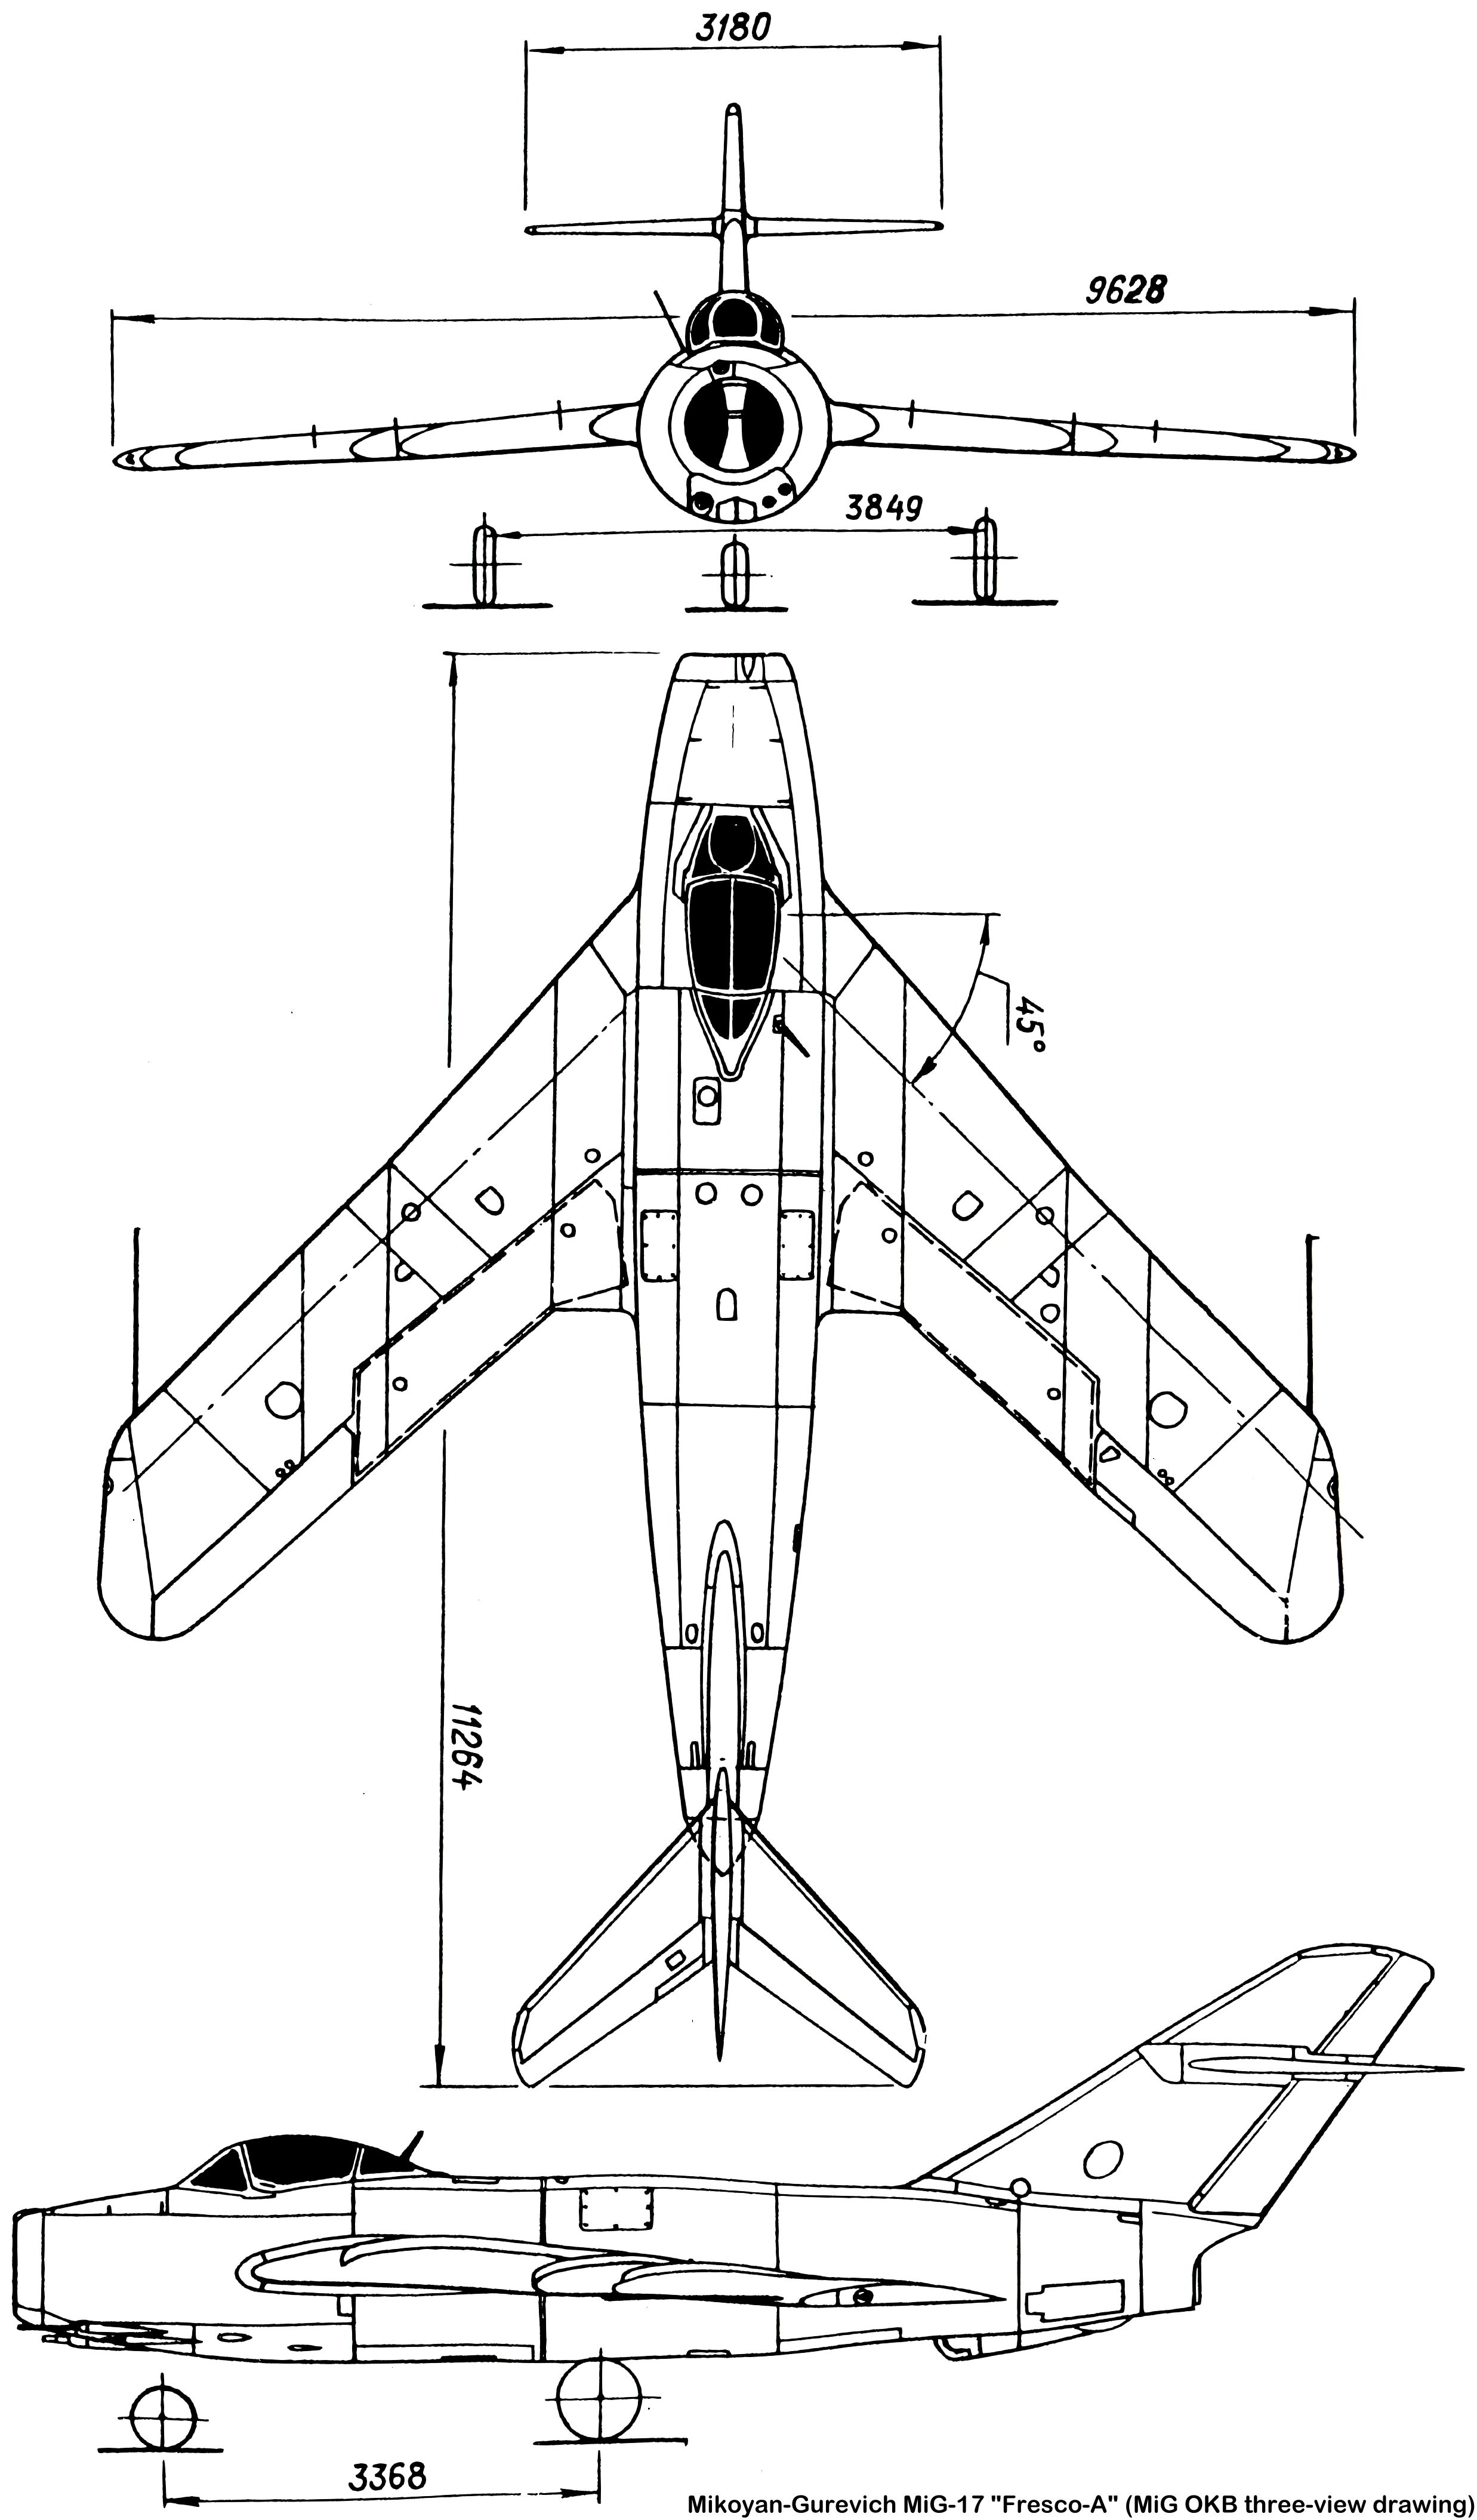 Enjoyable Mig 17 Diagram Concept Art Inspiration Aircraft Design Plane Wiring 101 Capemaxxcnl